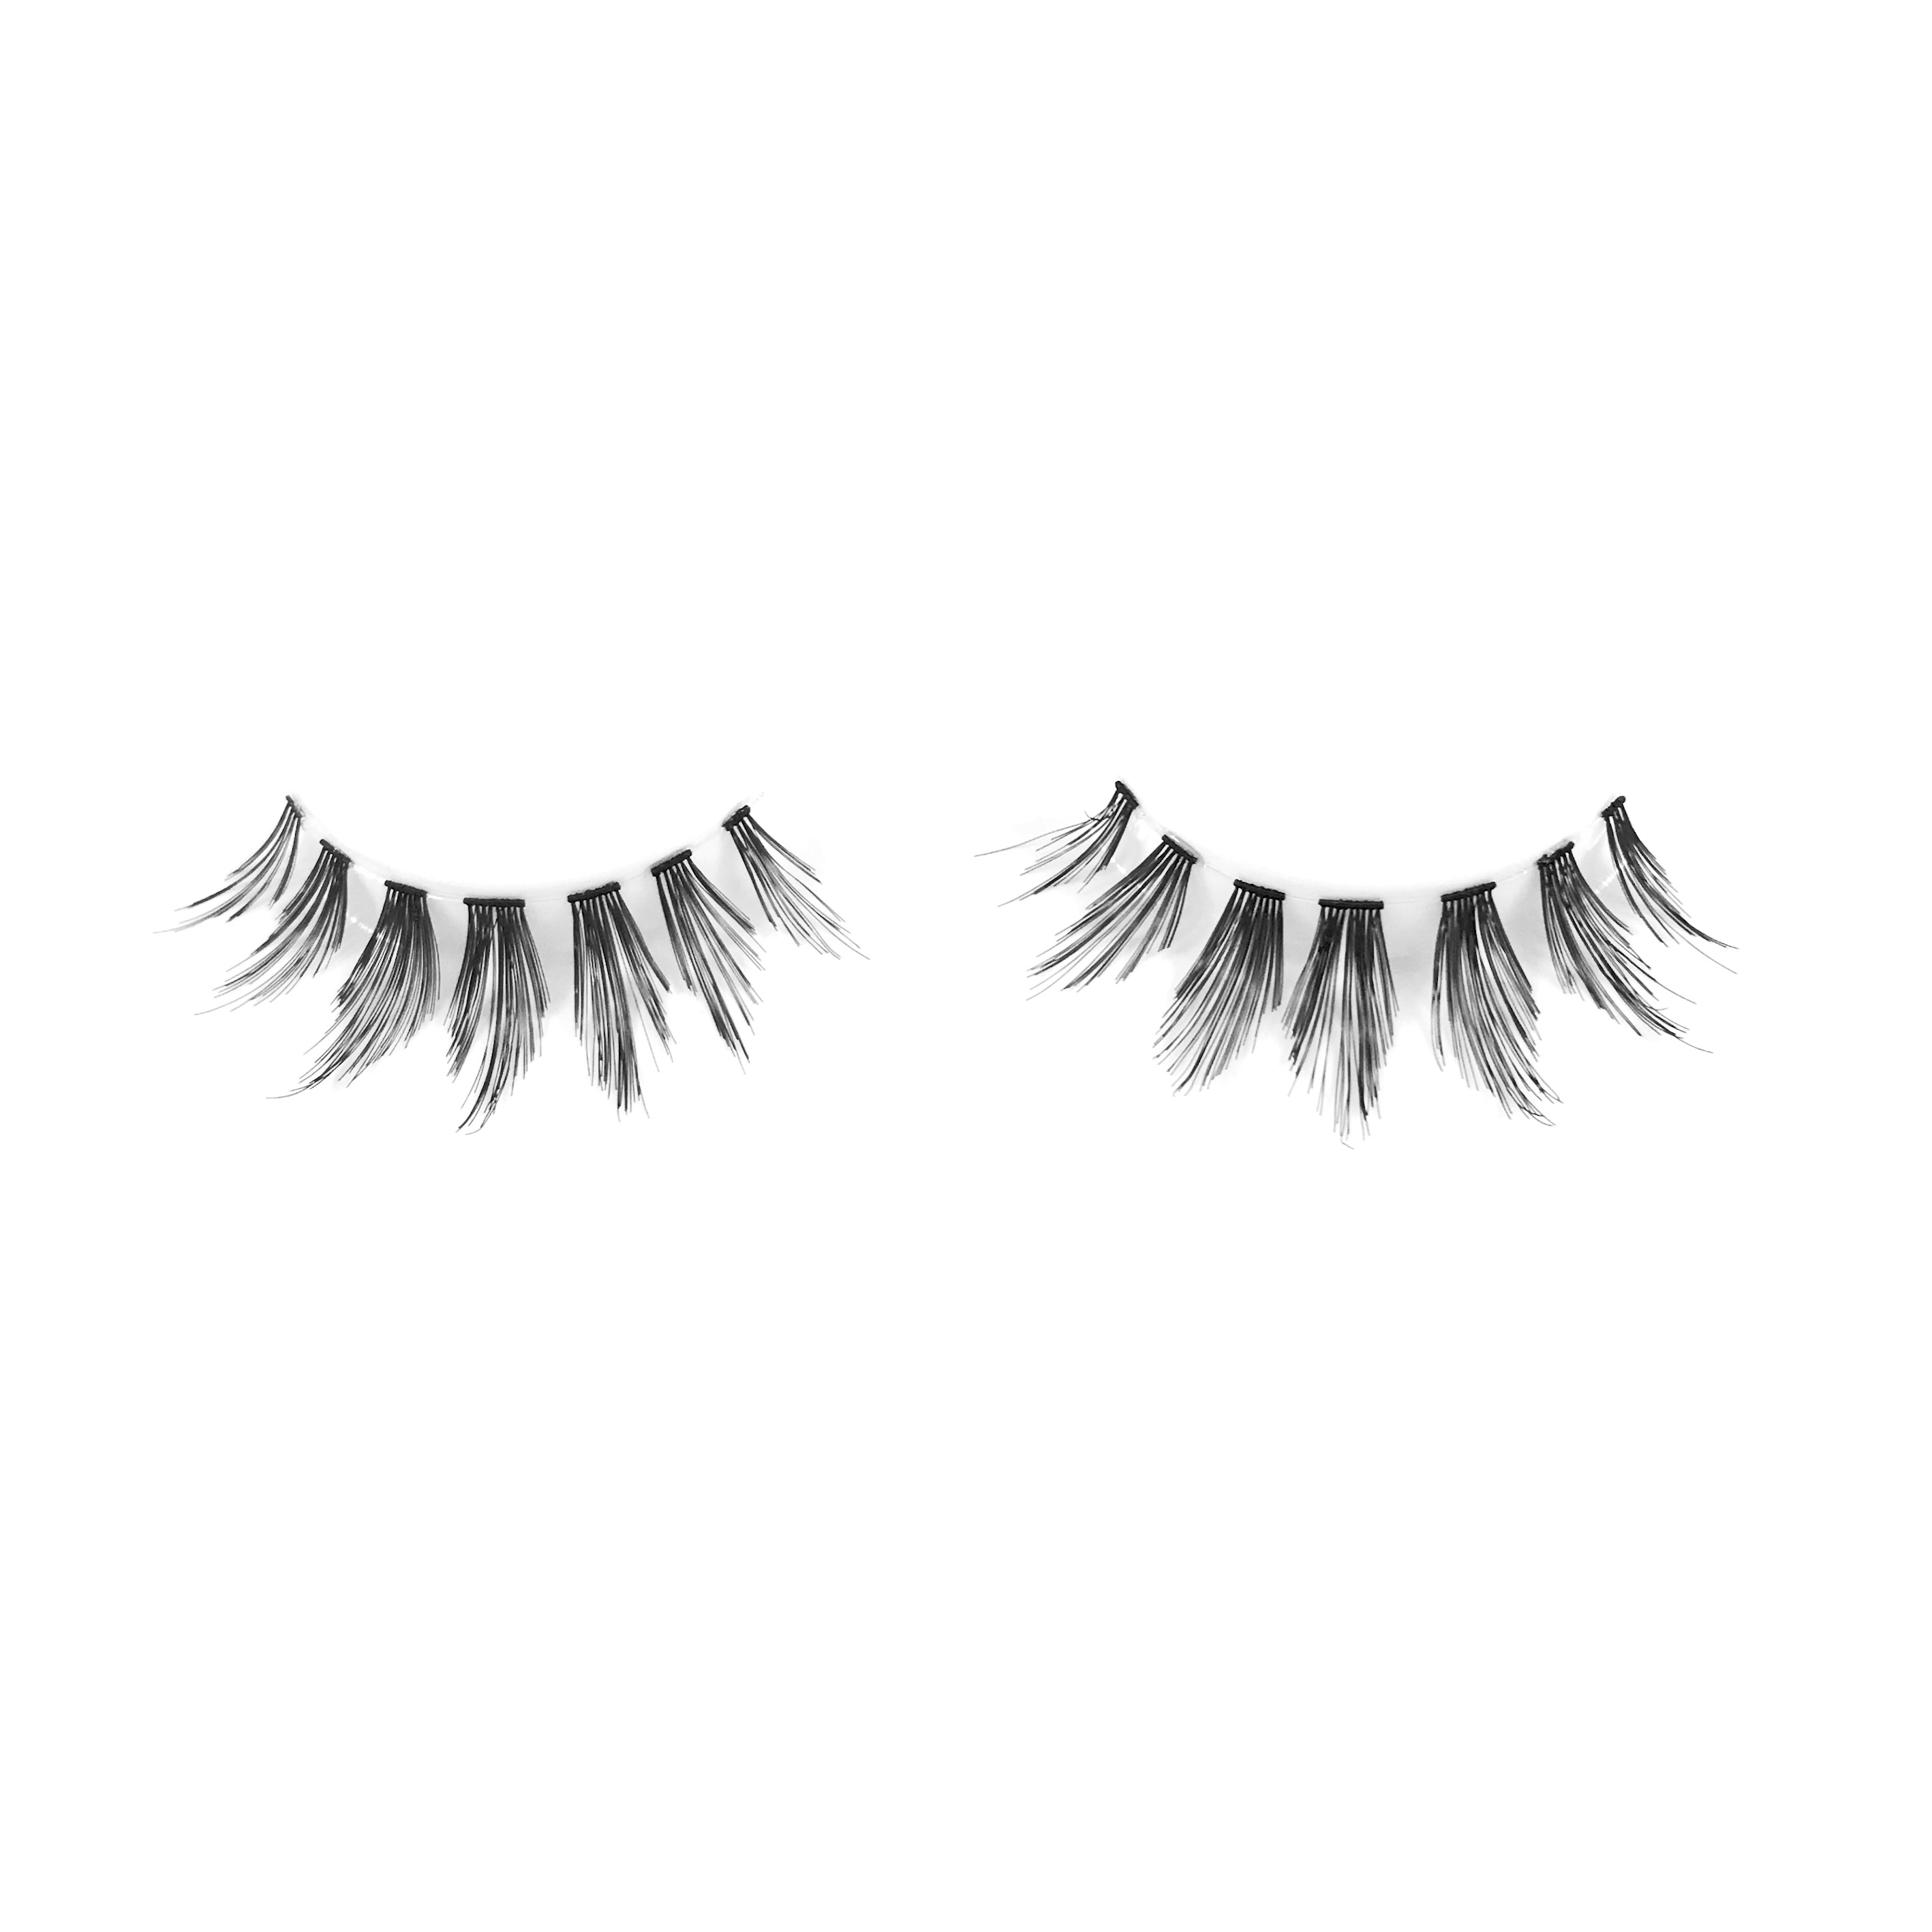 Milanté Beauty Devious 100% Vegan Human Hair Strip False Lashes